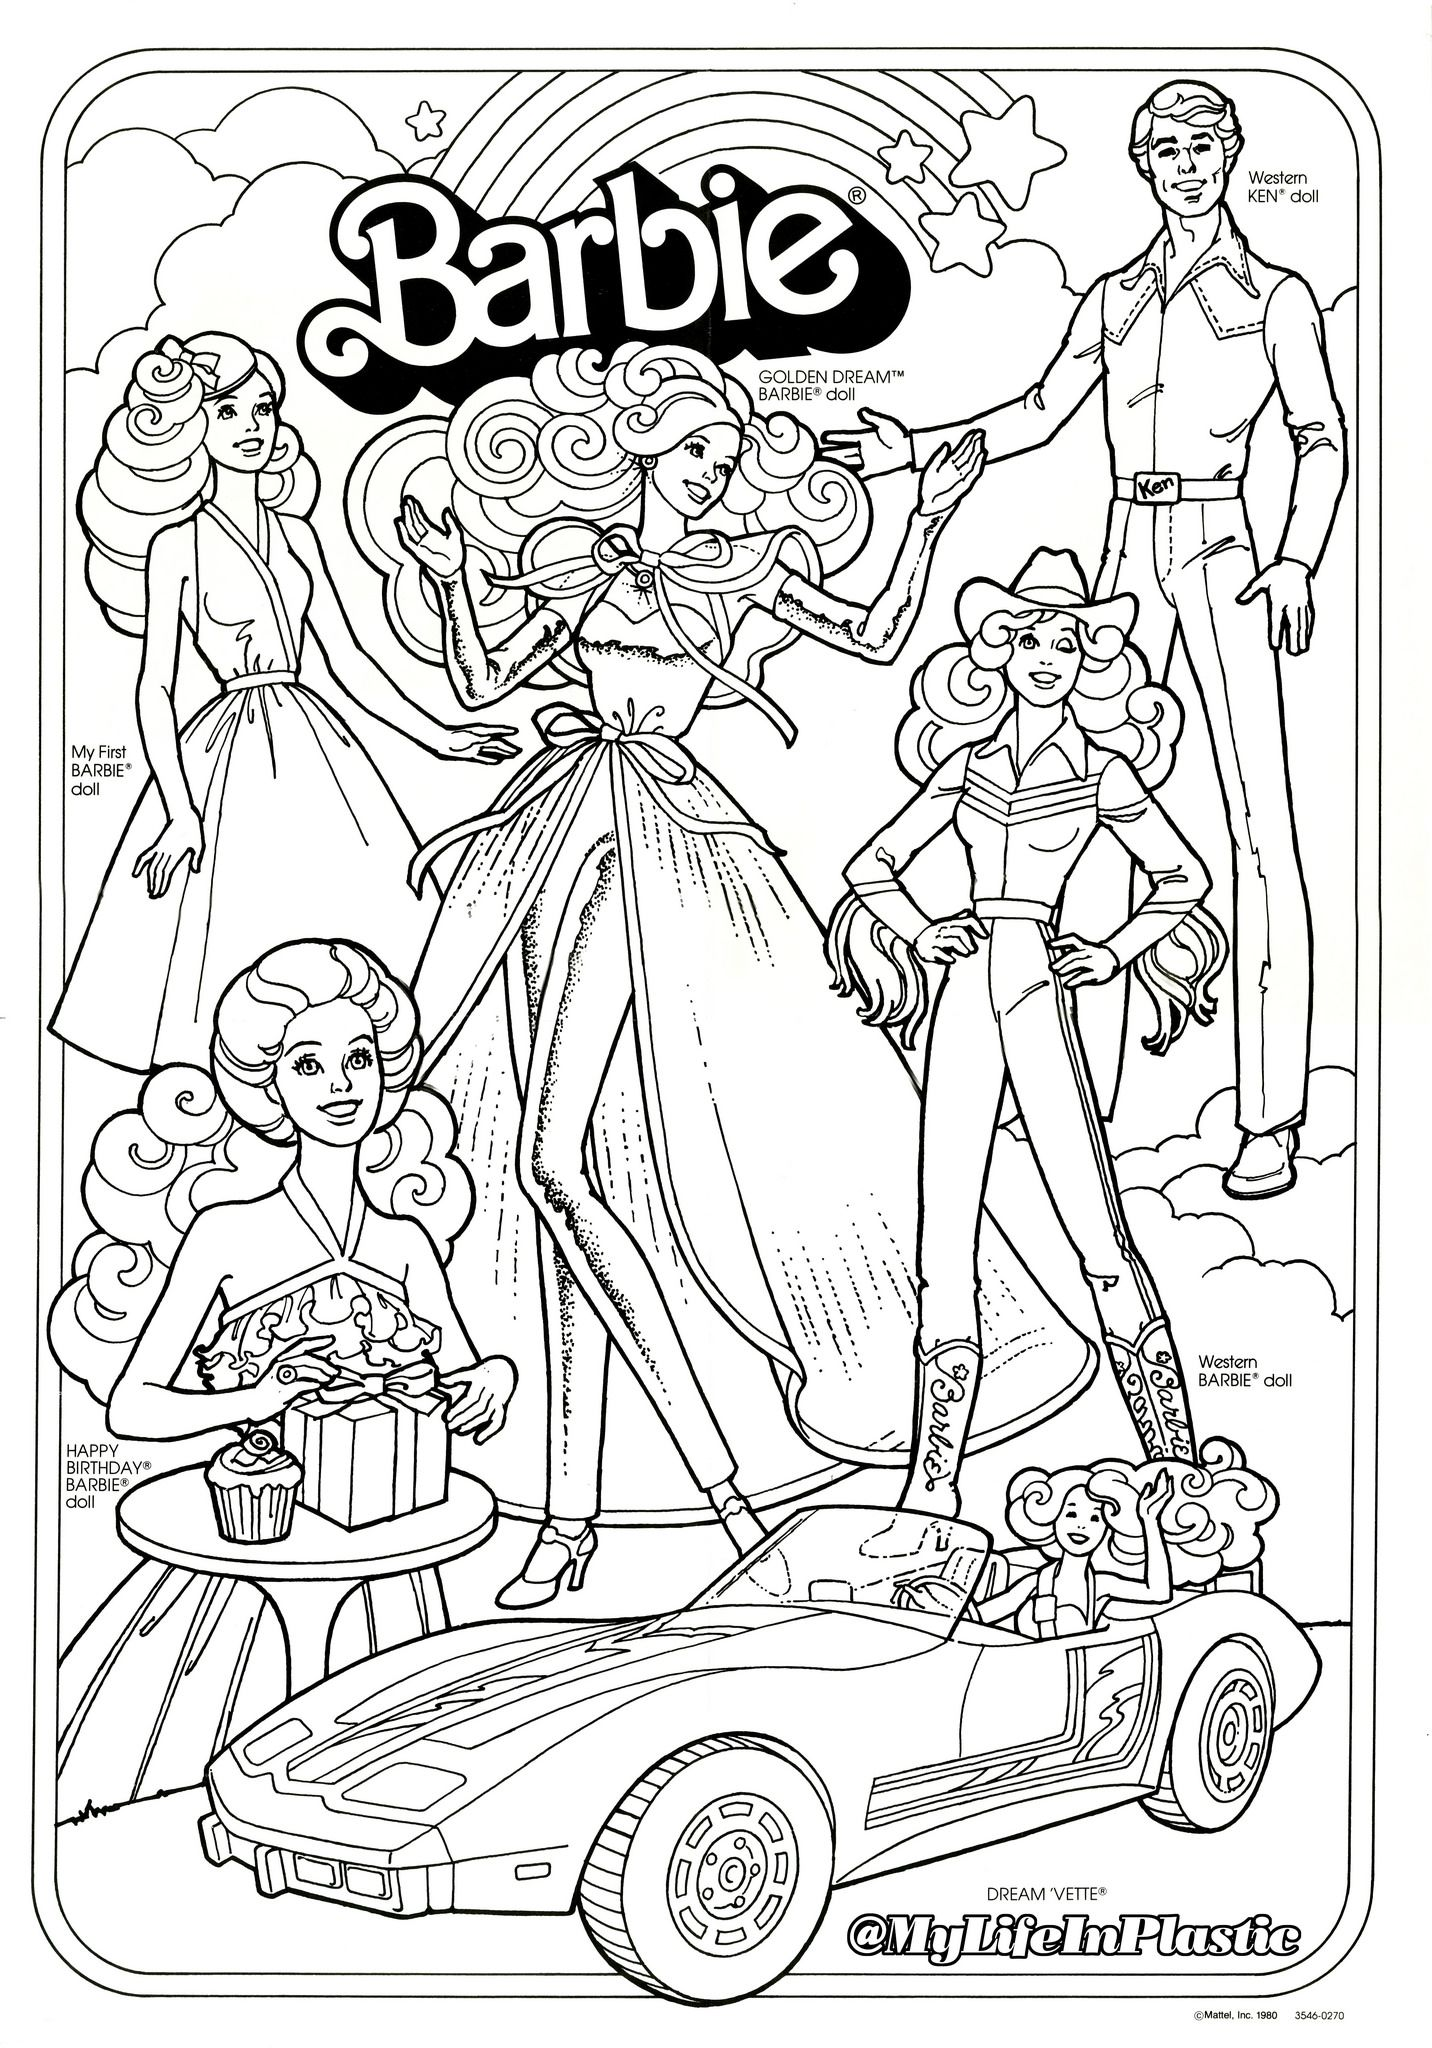 25 Creative Picture Of Fashion Coloring Pages Albanysinsanity Com Barbie Coloring Pages Princess Coloring Pages People Coloring Pages